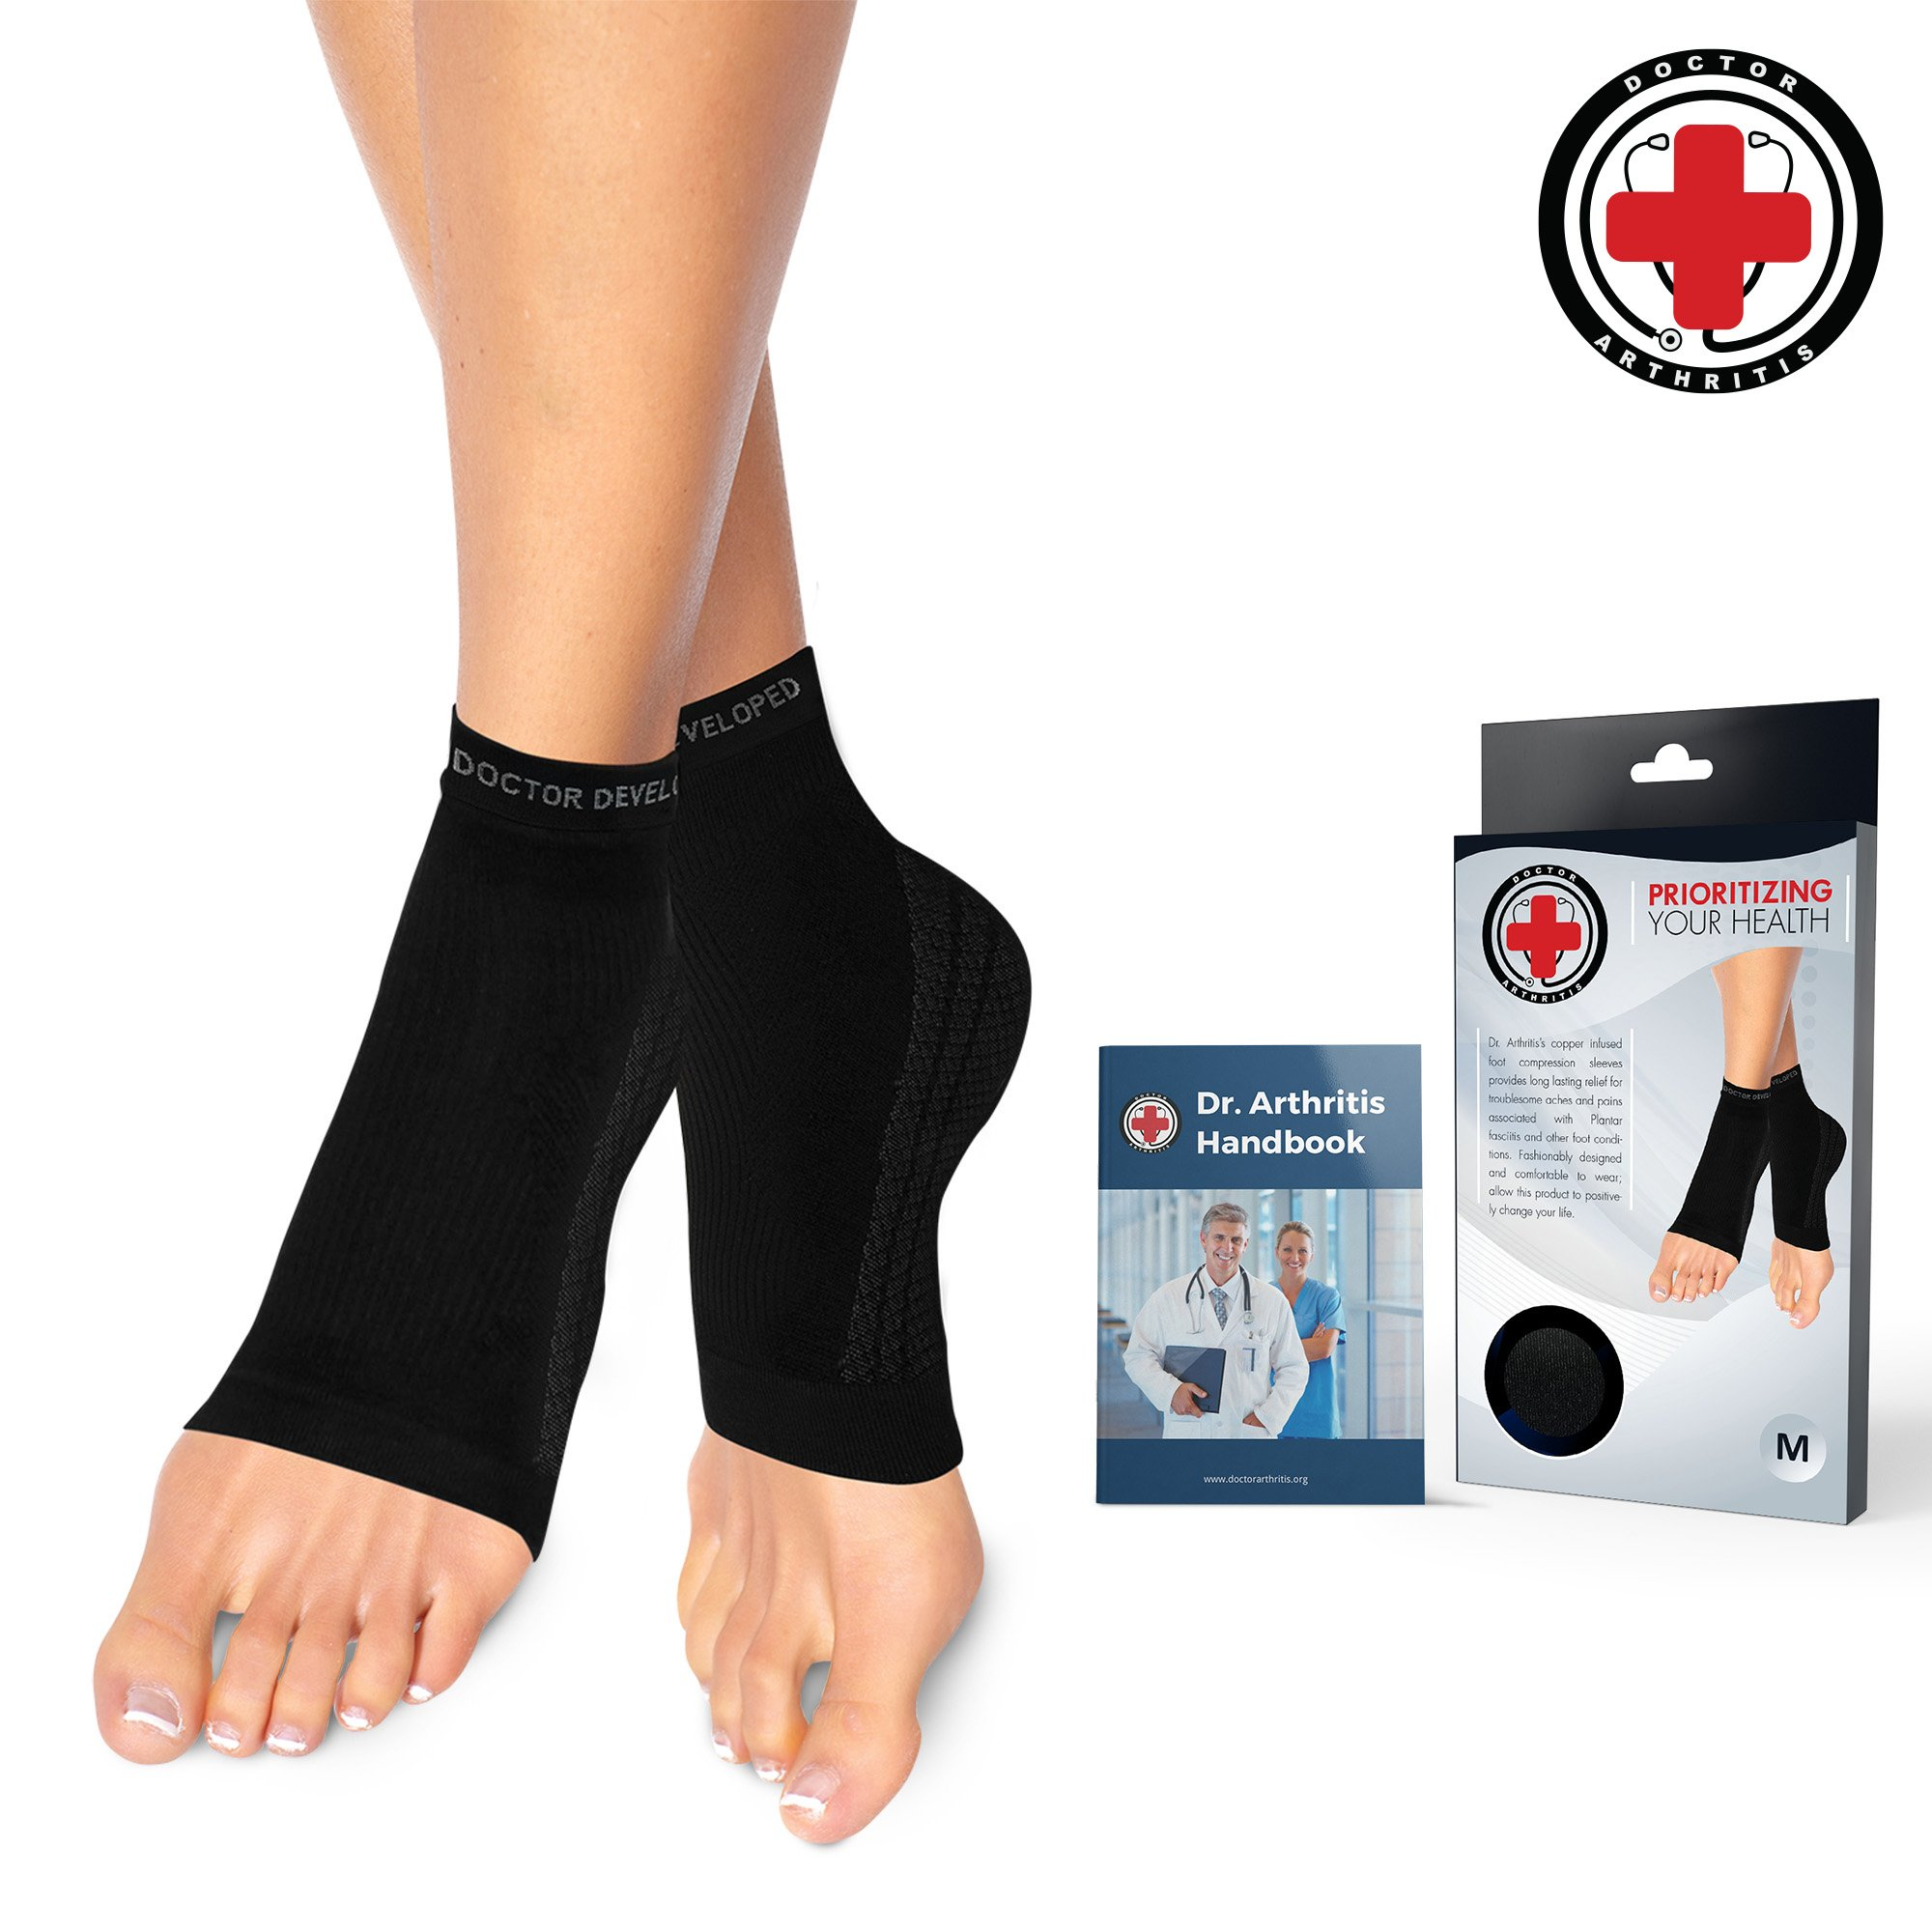 Dr. Arthritis Doctor Developed Copper Foot Sleeves/Plantar Fasciitis Socks (Pair) and Doctor Written Handbook -Guaranteed Relief for Plantar Fasciitis, Heel Support & Ankle Conditions (M) by Dr. Arthritis